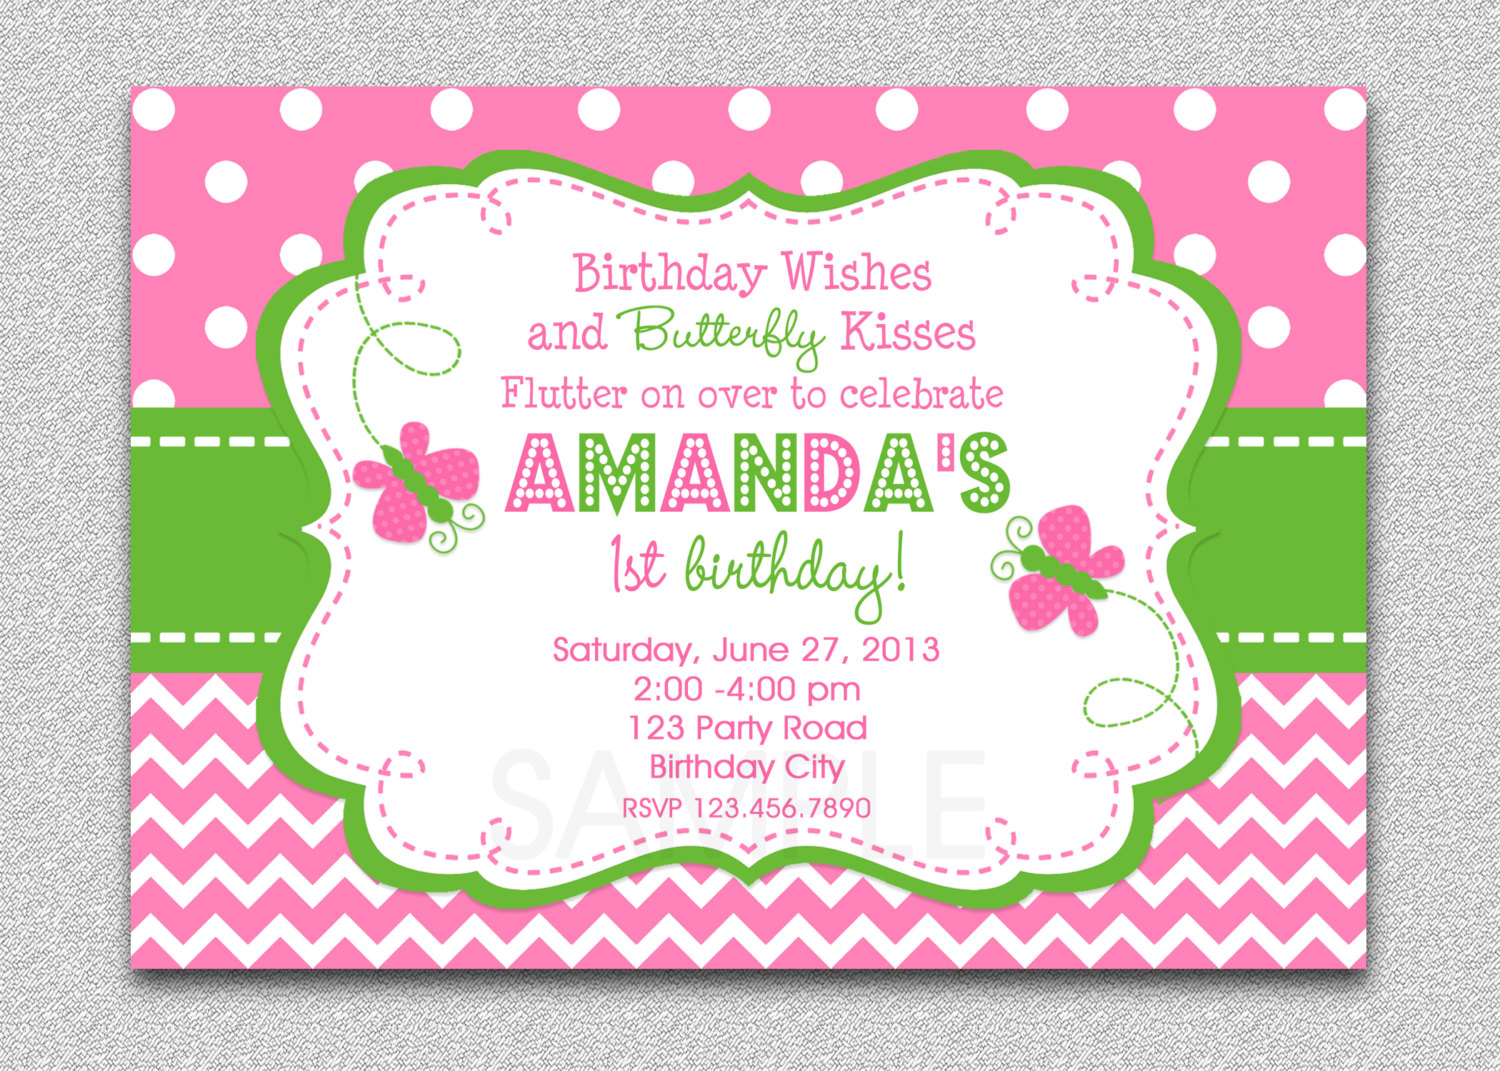 butterfly birthday invitation ideas ; butterfly-birthday-invitations-landscaping-Birthday-Invitation-Template-inspiration-ideas-in-chic-art-home-design-13